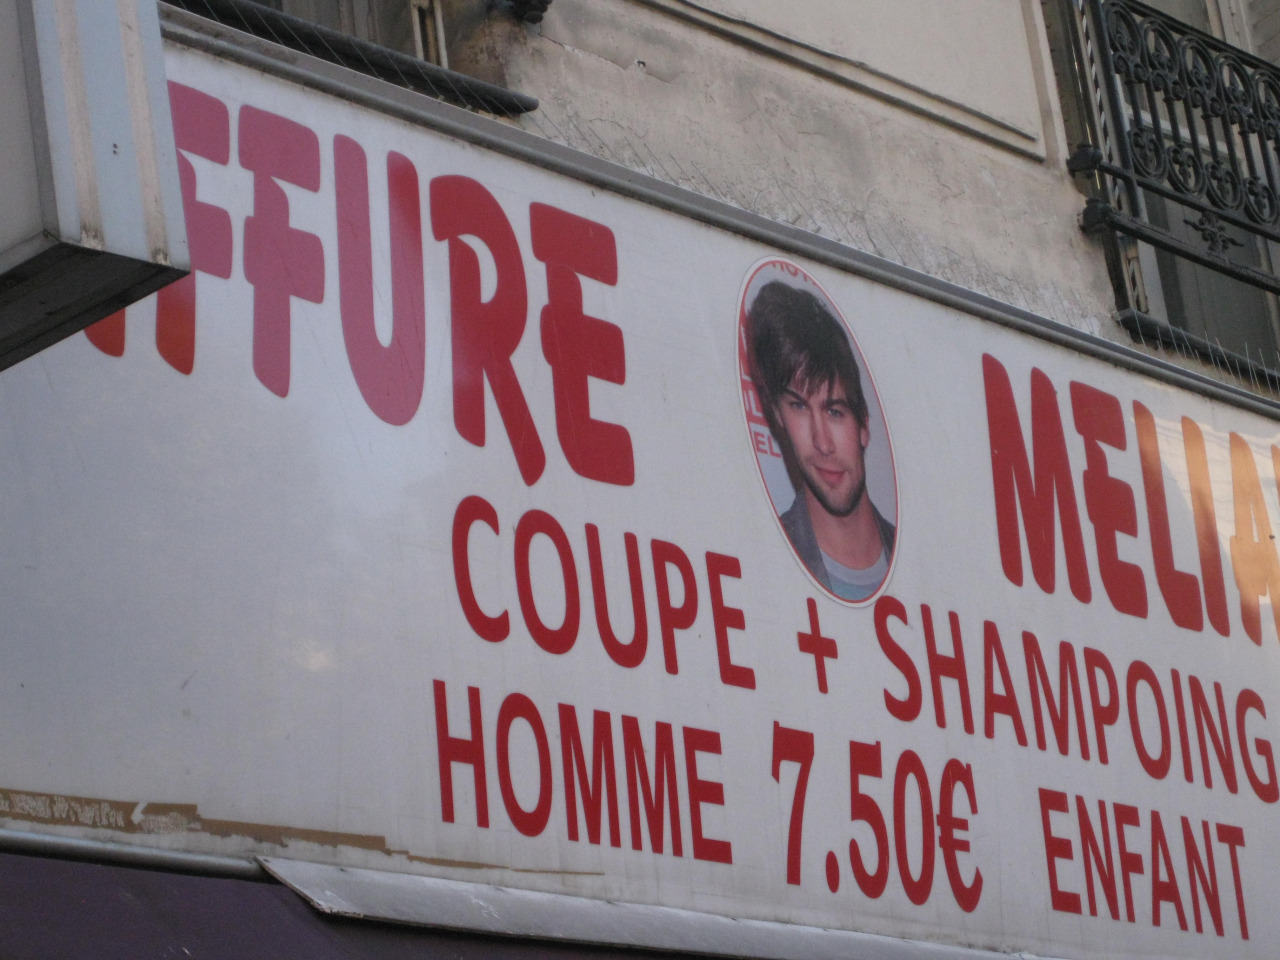 Cool haircuts in France.